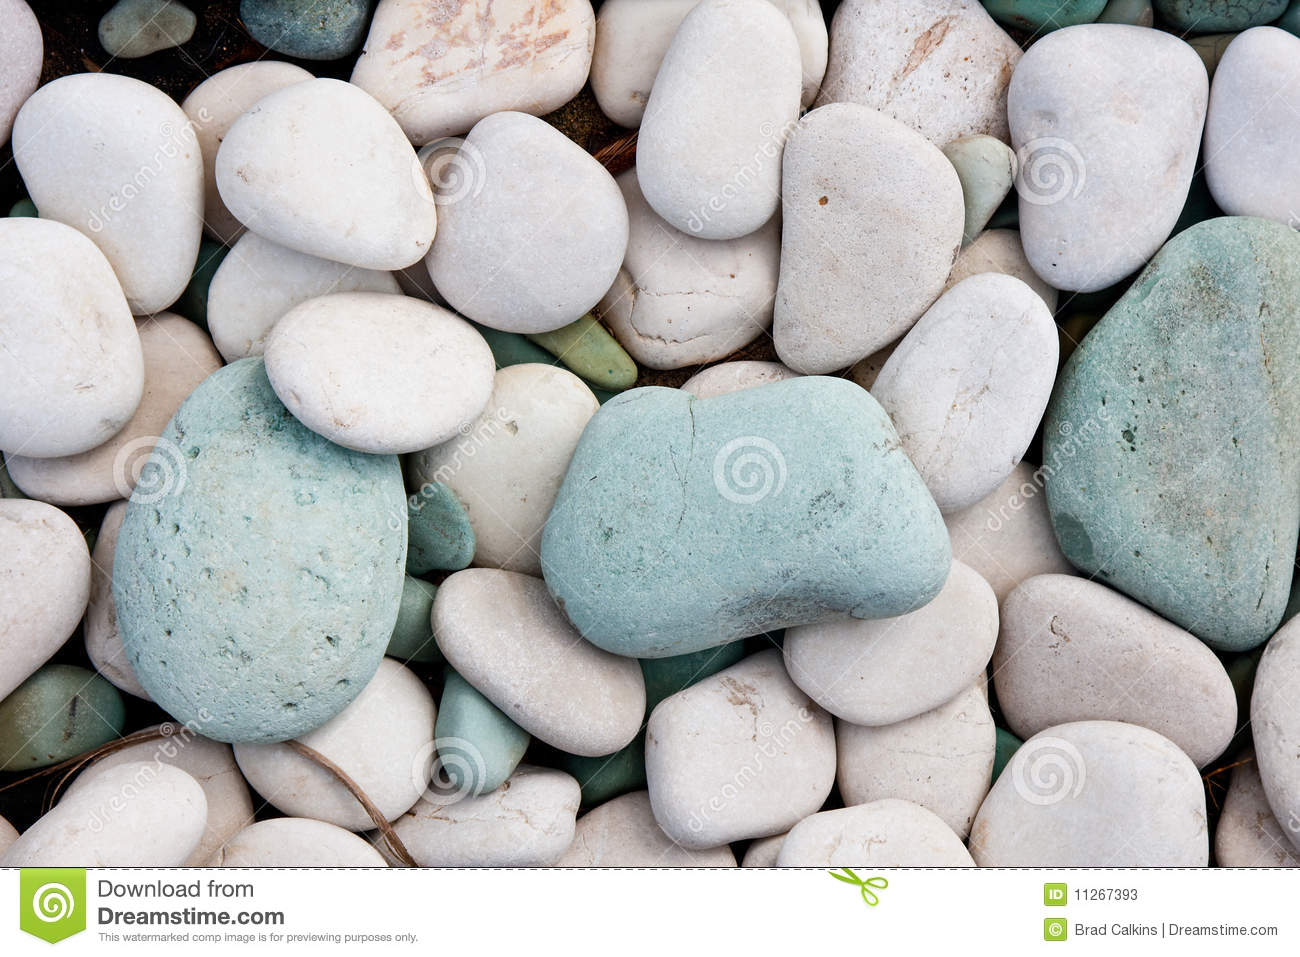 Scapings Landscaping rocks and stones